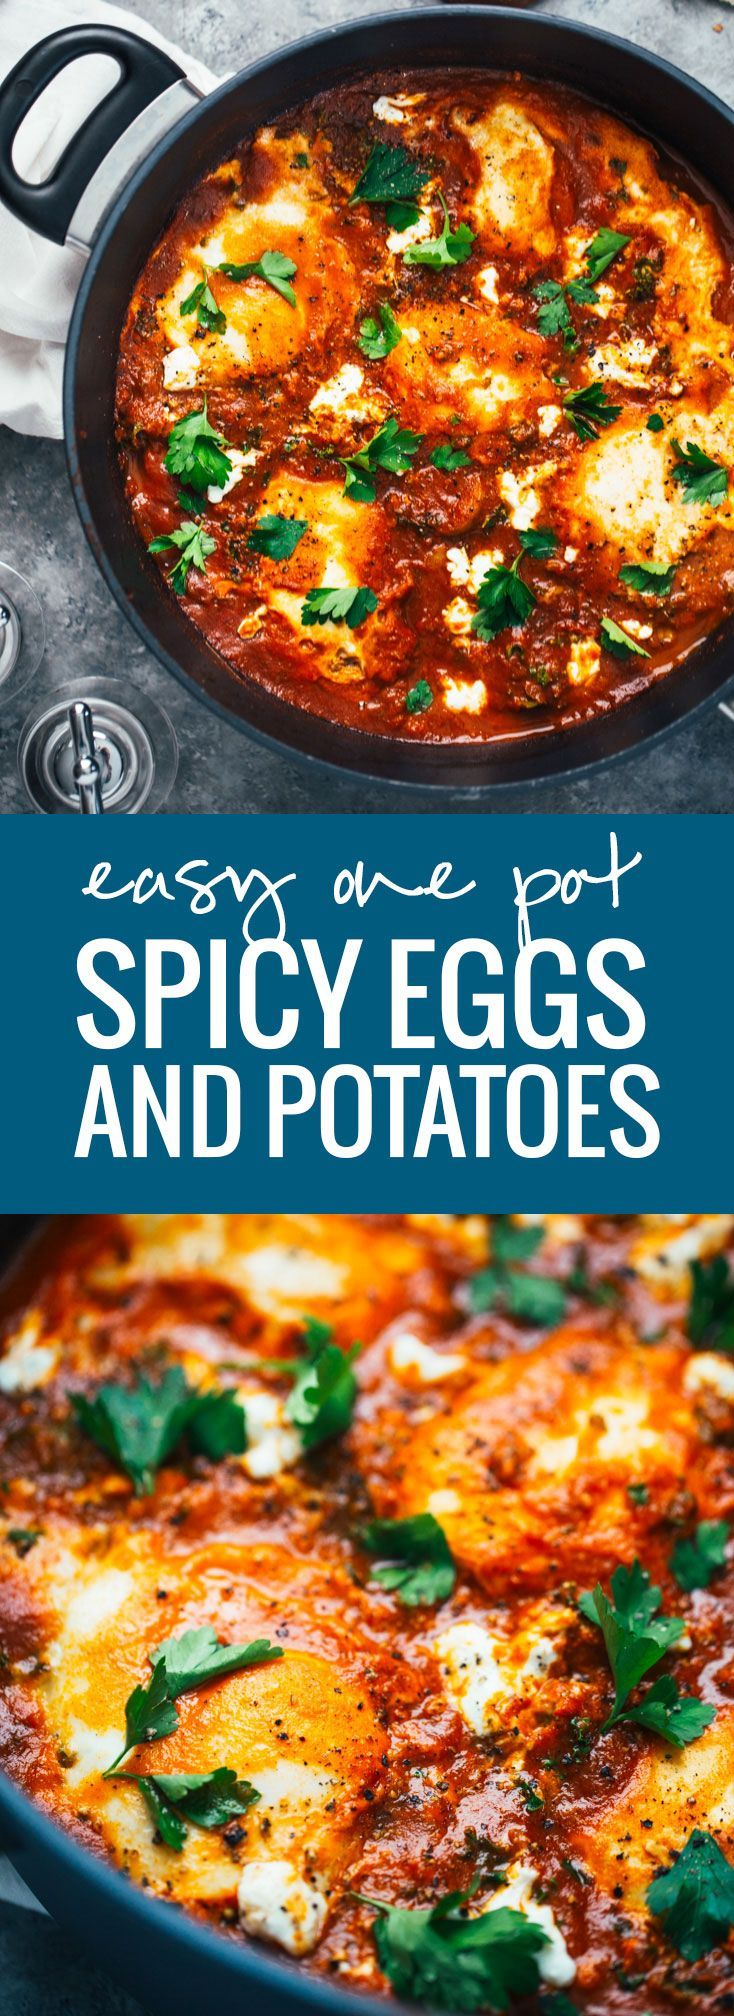 One Pot Spicy Eggs and Potatoes with Goat Cheese - a simple homemade sauce with spicy pan-fried potatoes, kale, creamy eggs, and goat cheese. Delicious!